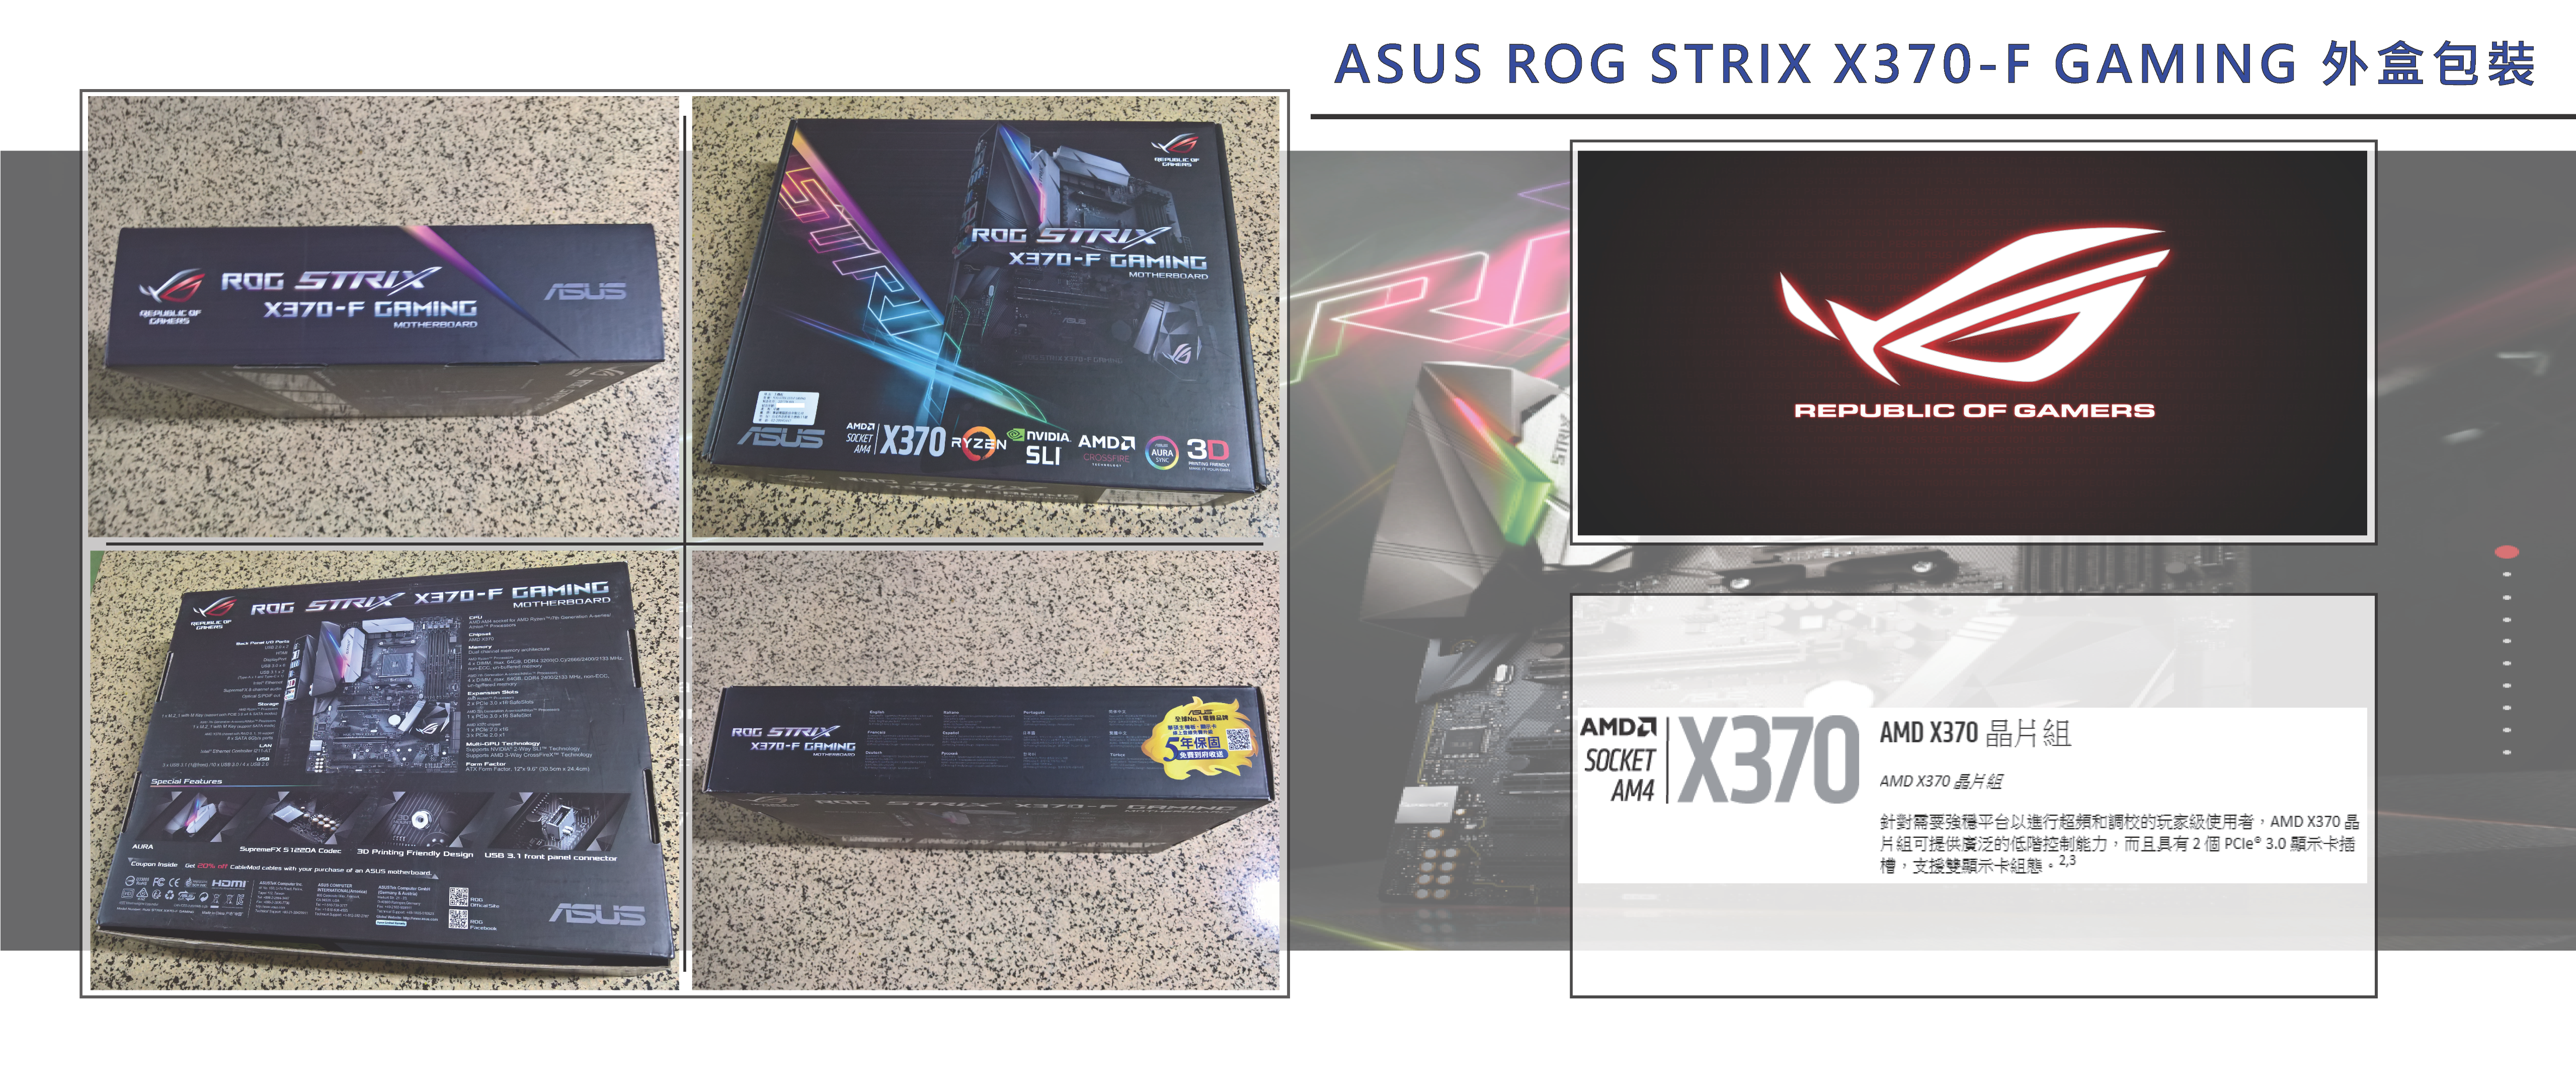 AMD RYZEN 5 1600 & ASUS ROG STRIX X370-F GAMING & AMD RADEON R9 NANOx2 CROSSFIREX TEST - XFastest - ASUS ROG STRIX X370-F GAMING 外盒包裝